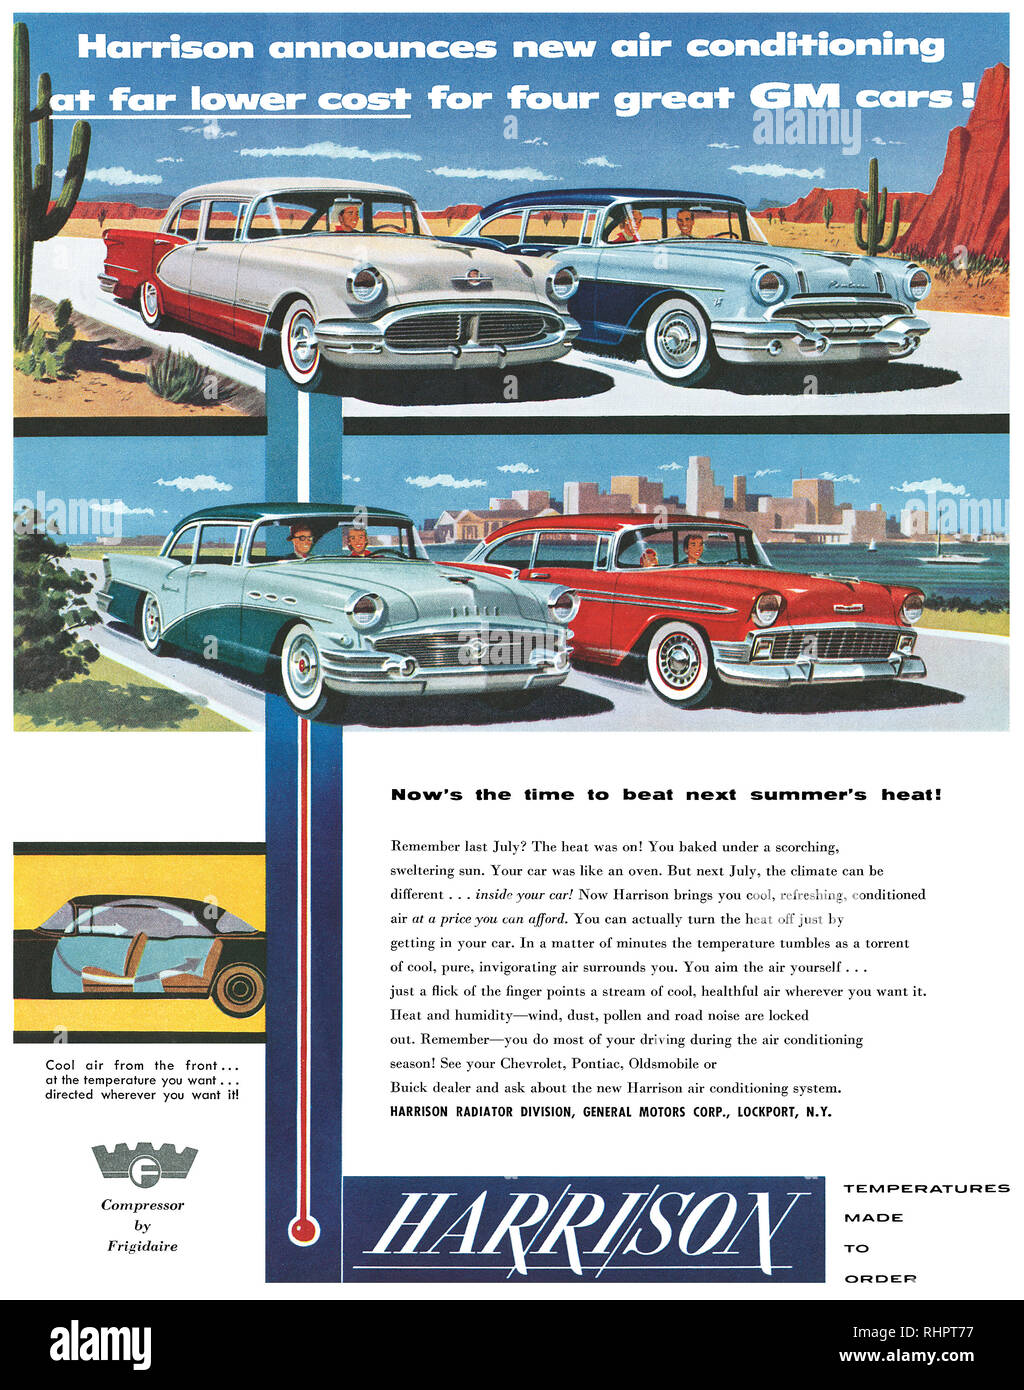 1950s General Motors Stock Photos & 1950s General Motors